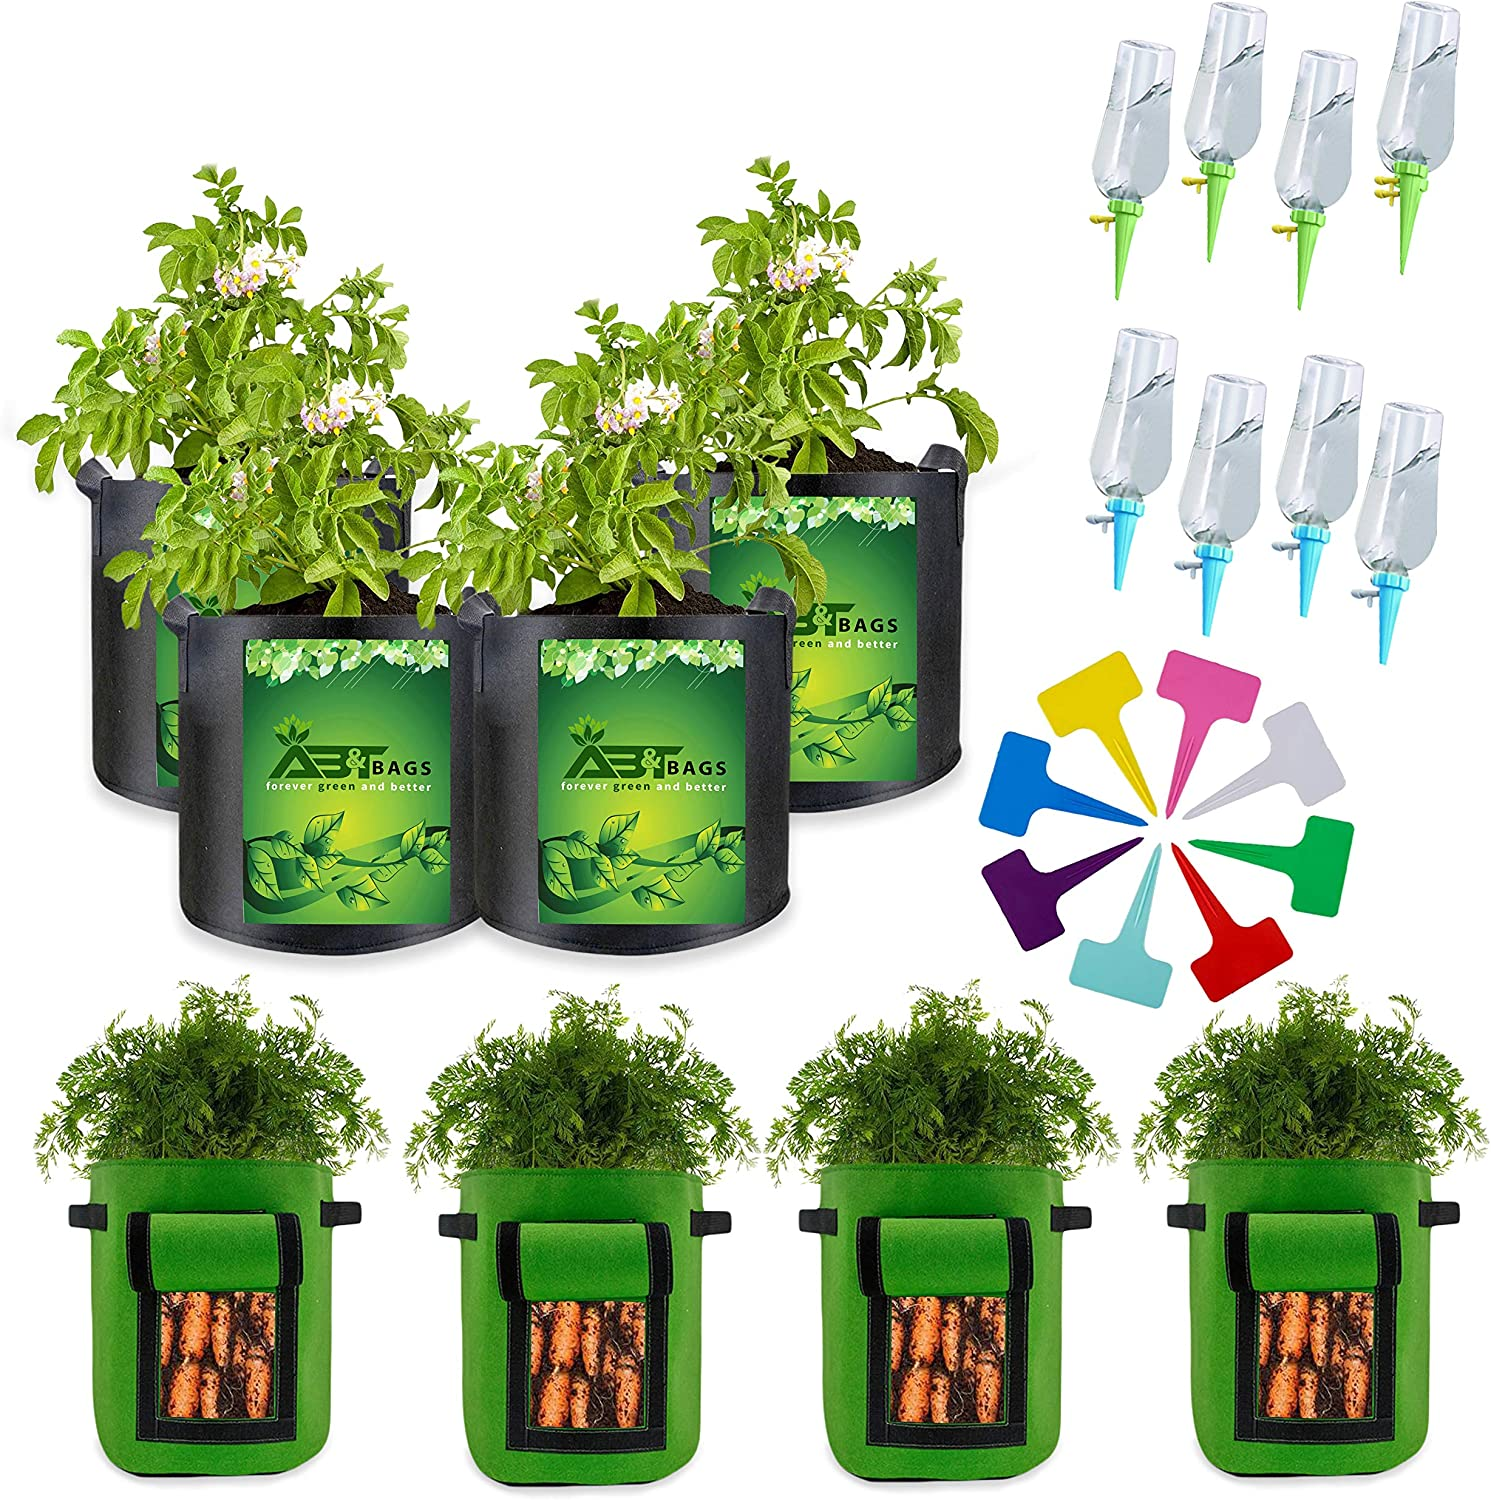 Grow Bags Potato Grow Bags 7 Gallon 8 Pack with Flap Handles Thickened Nonwoven Fabric Pots Tomato Planter Bags Plant 8 Watering Spikes Garden Container Vegetables Planter Pots Plant Waterer